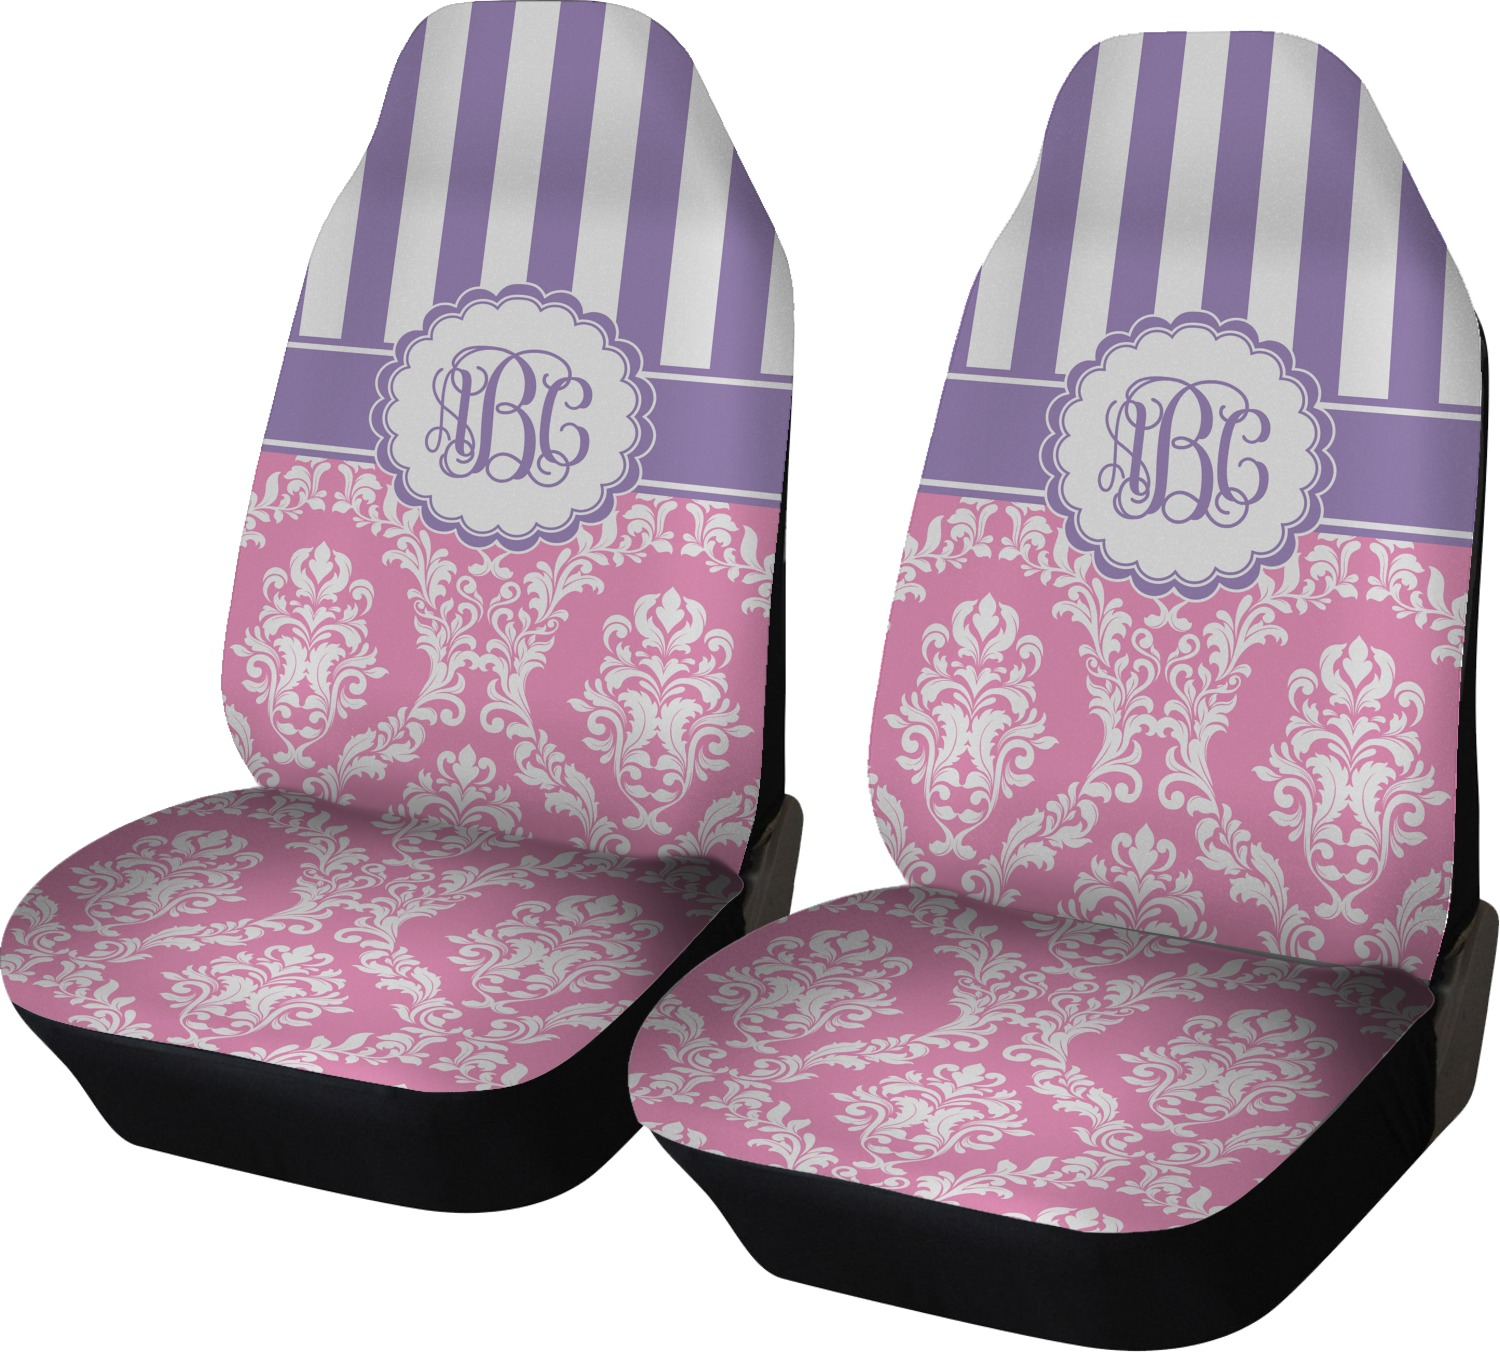 Mr And Mrs Car Seat Covers